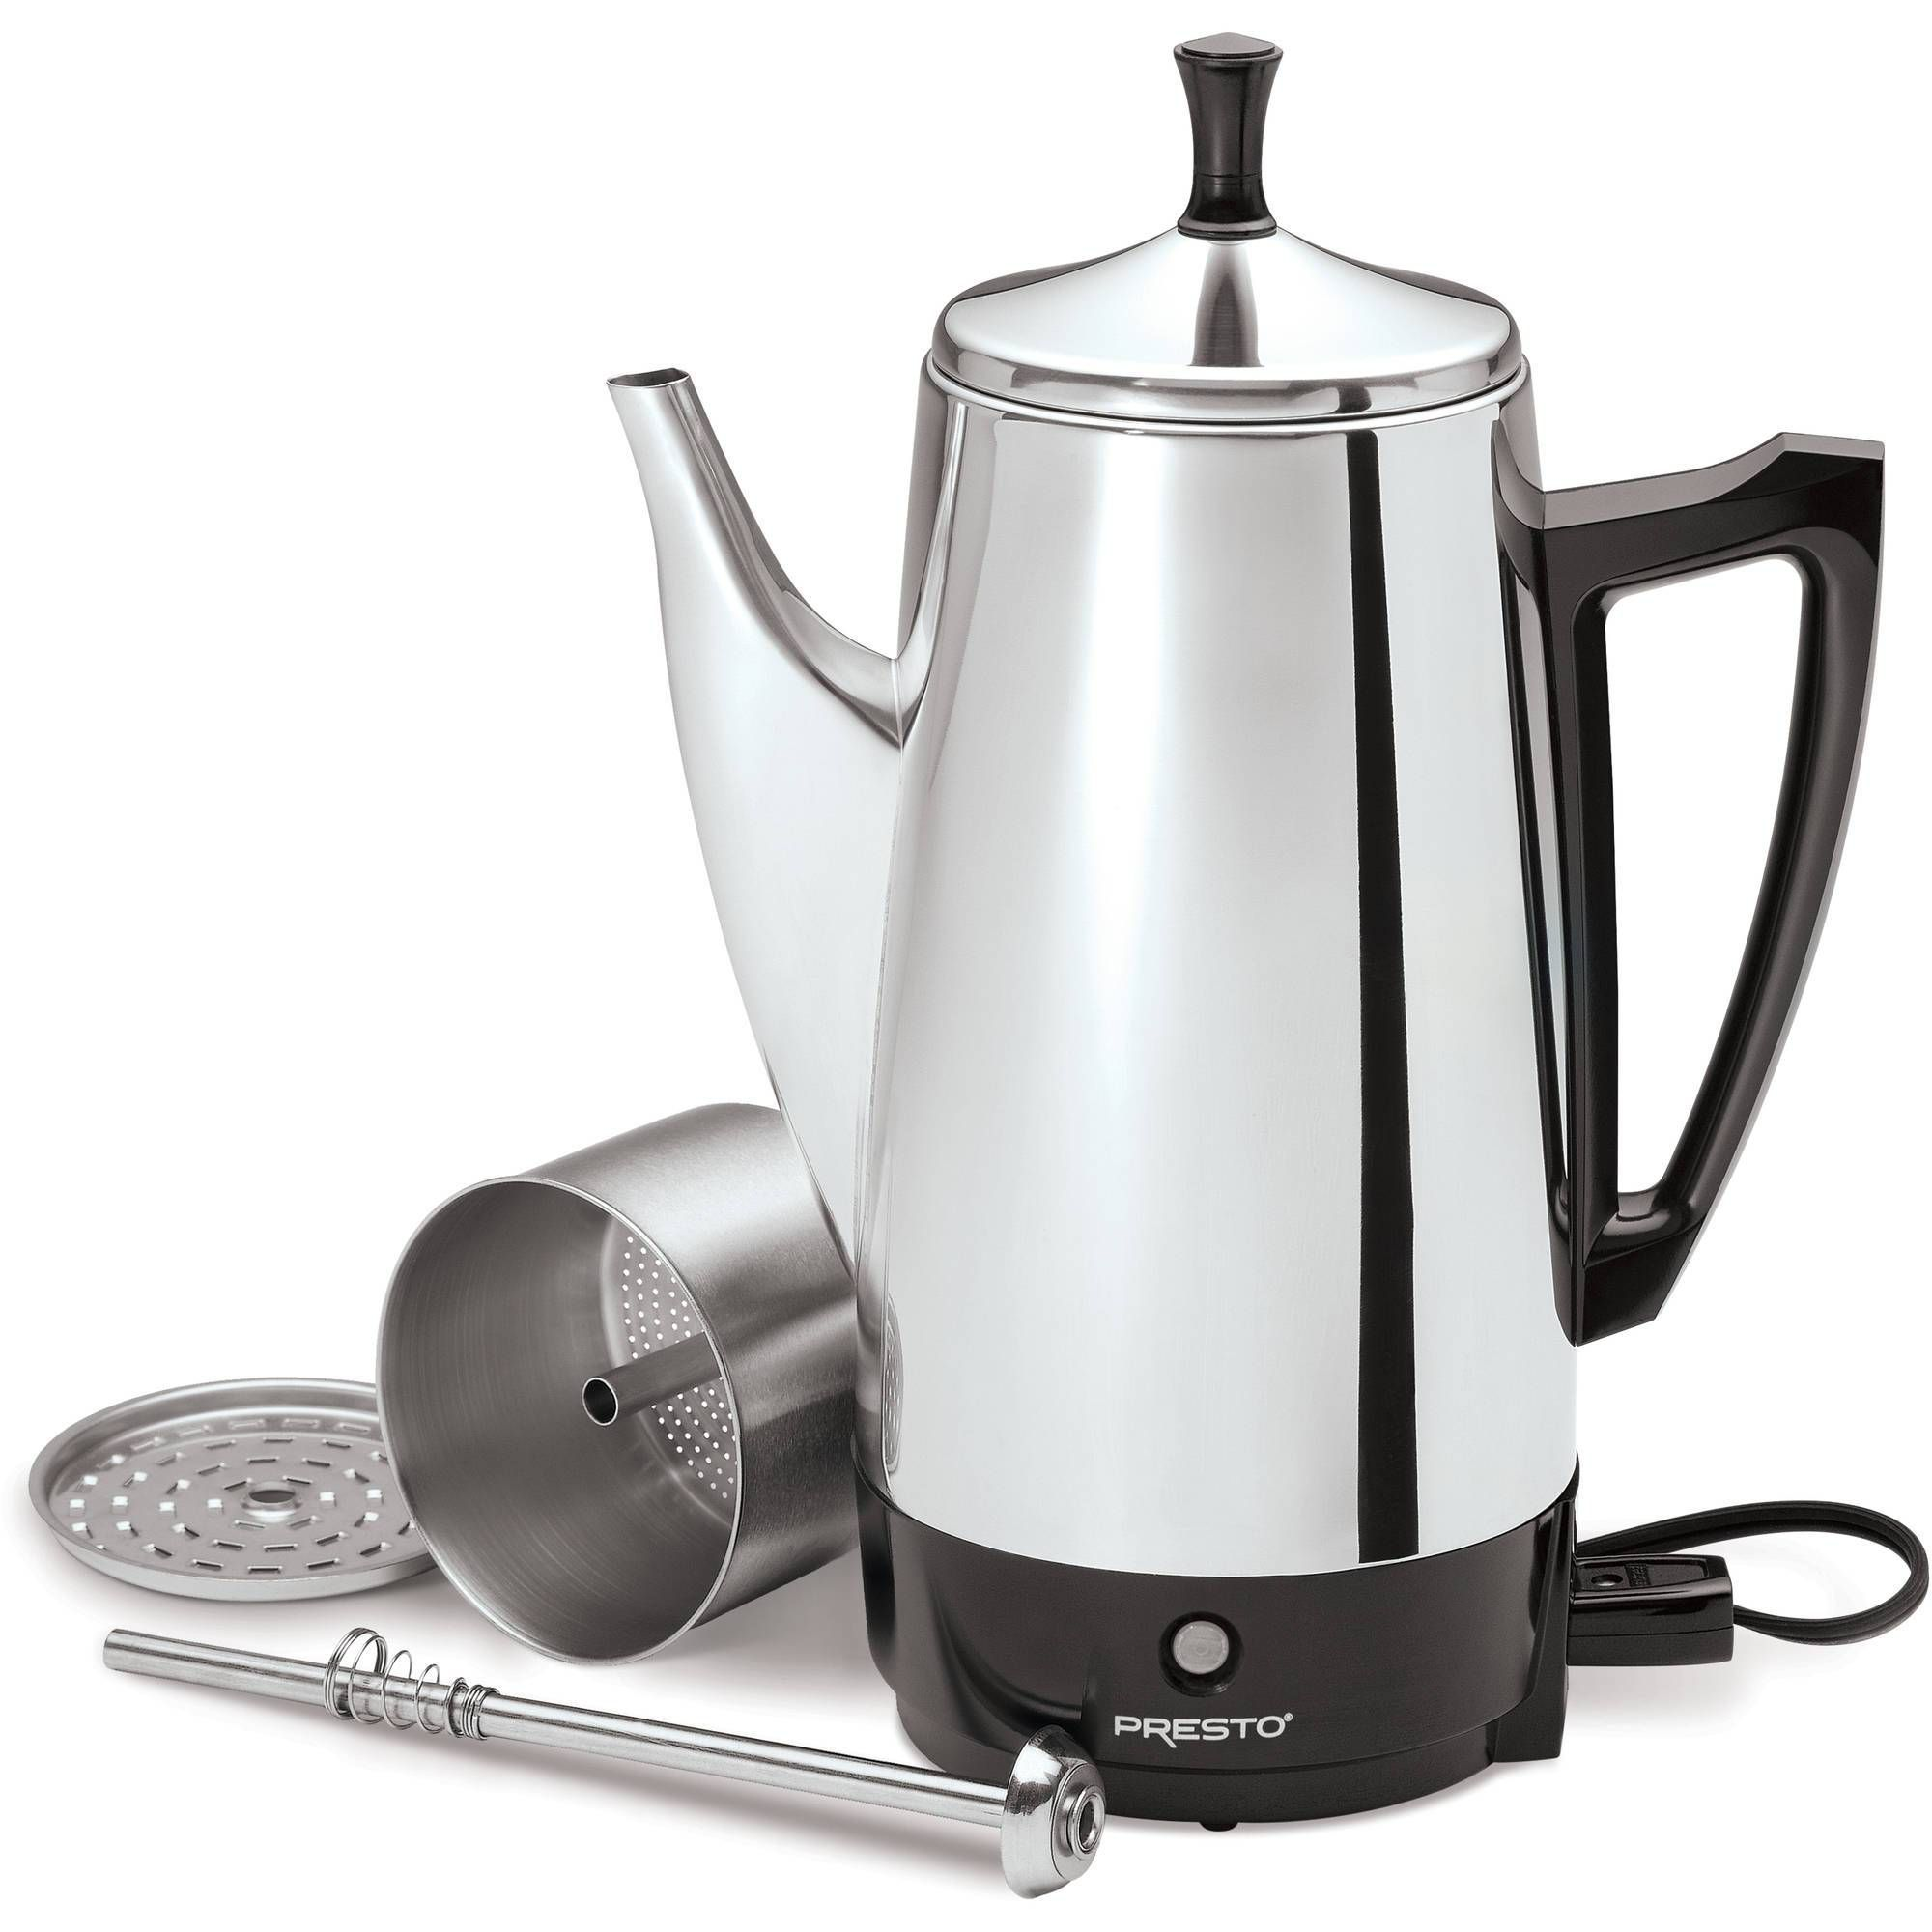 Presto cup stainless steel coffee maker products in